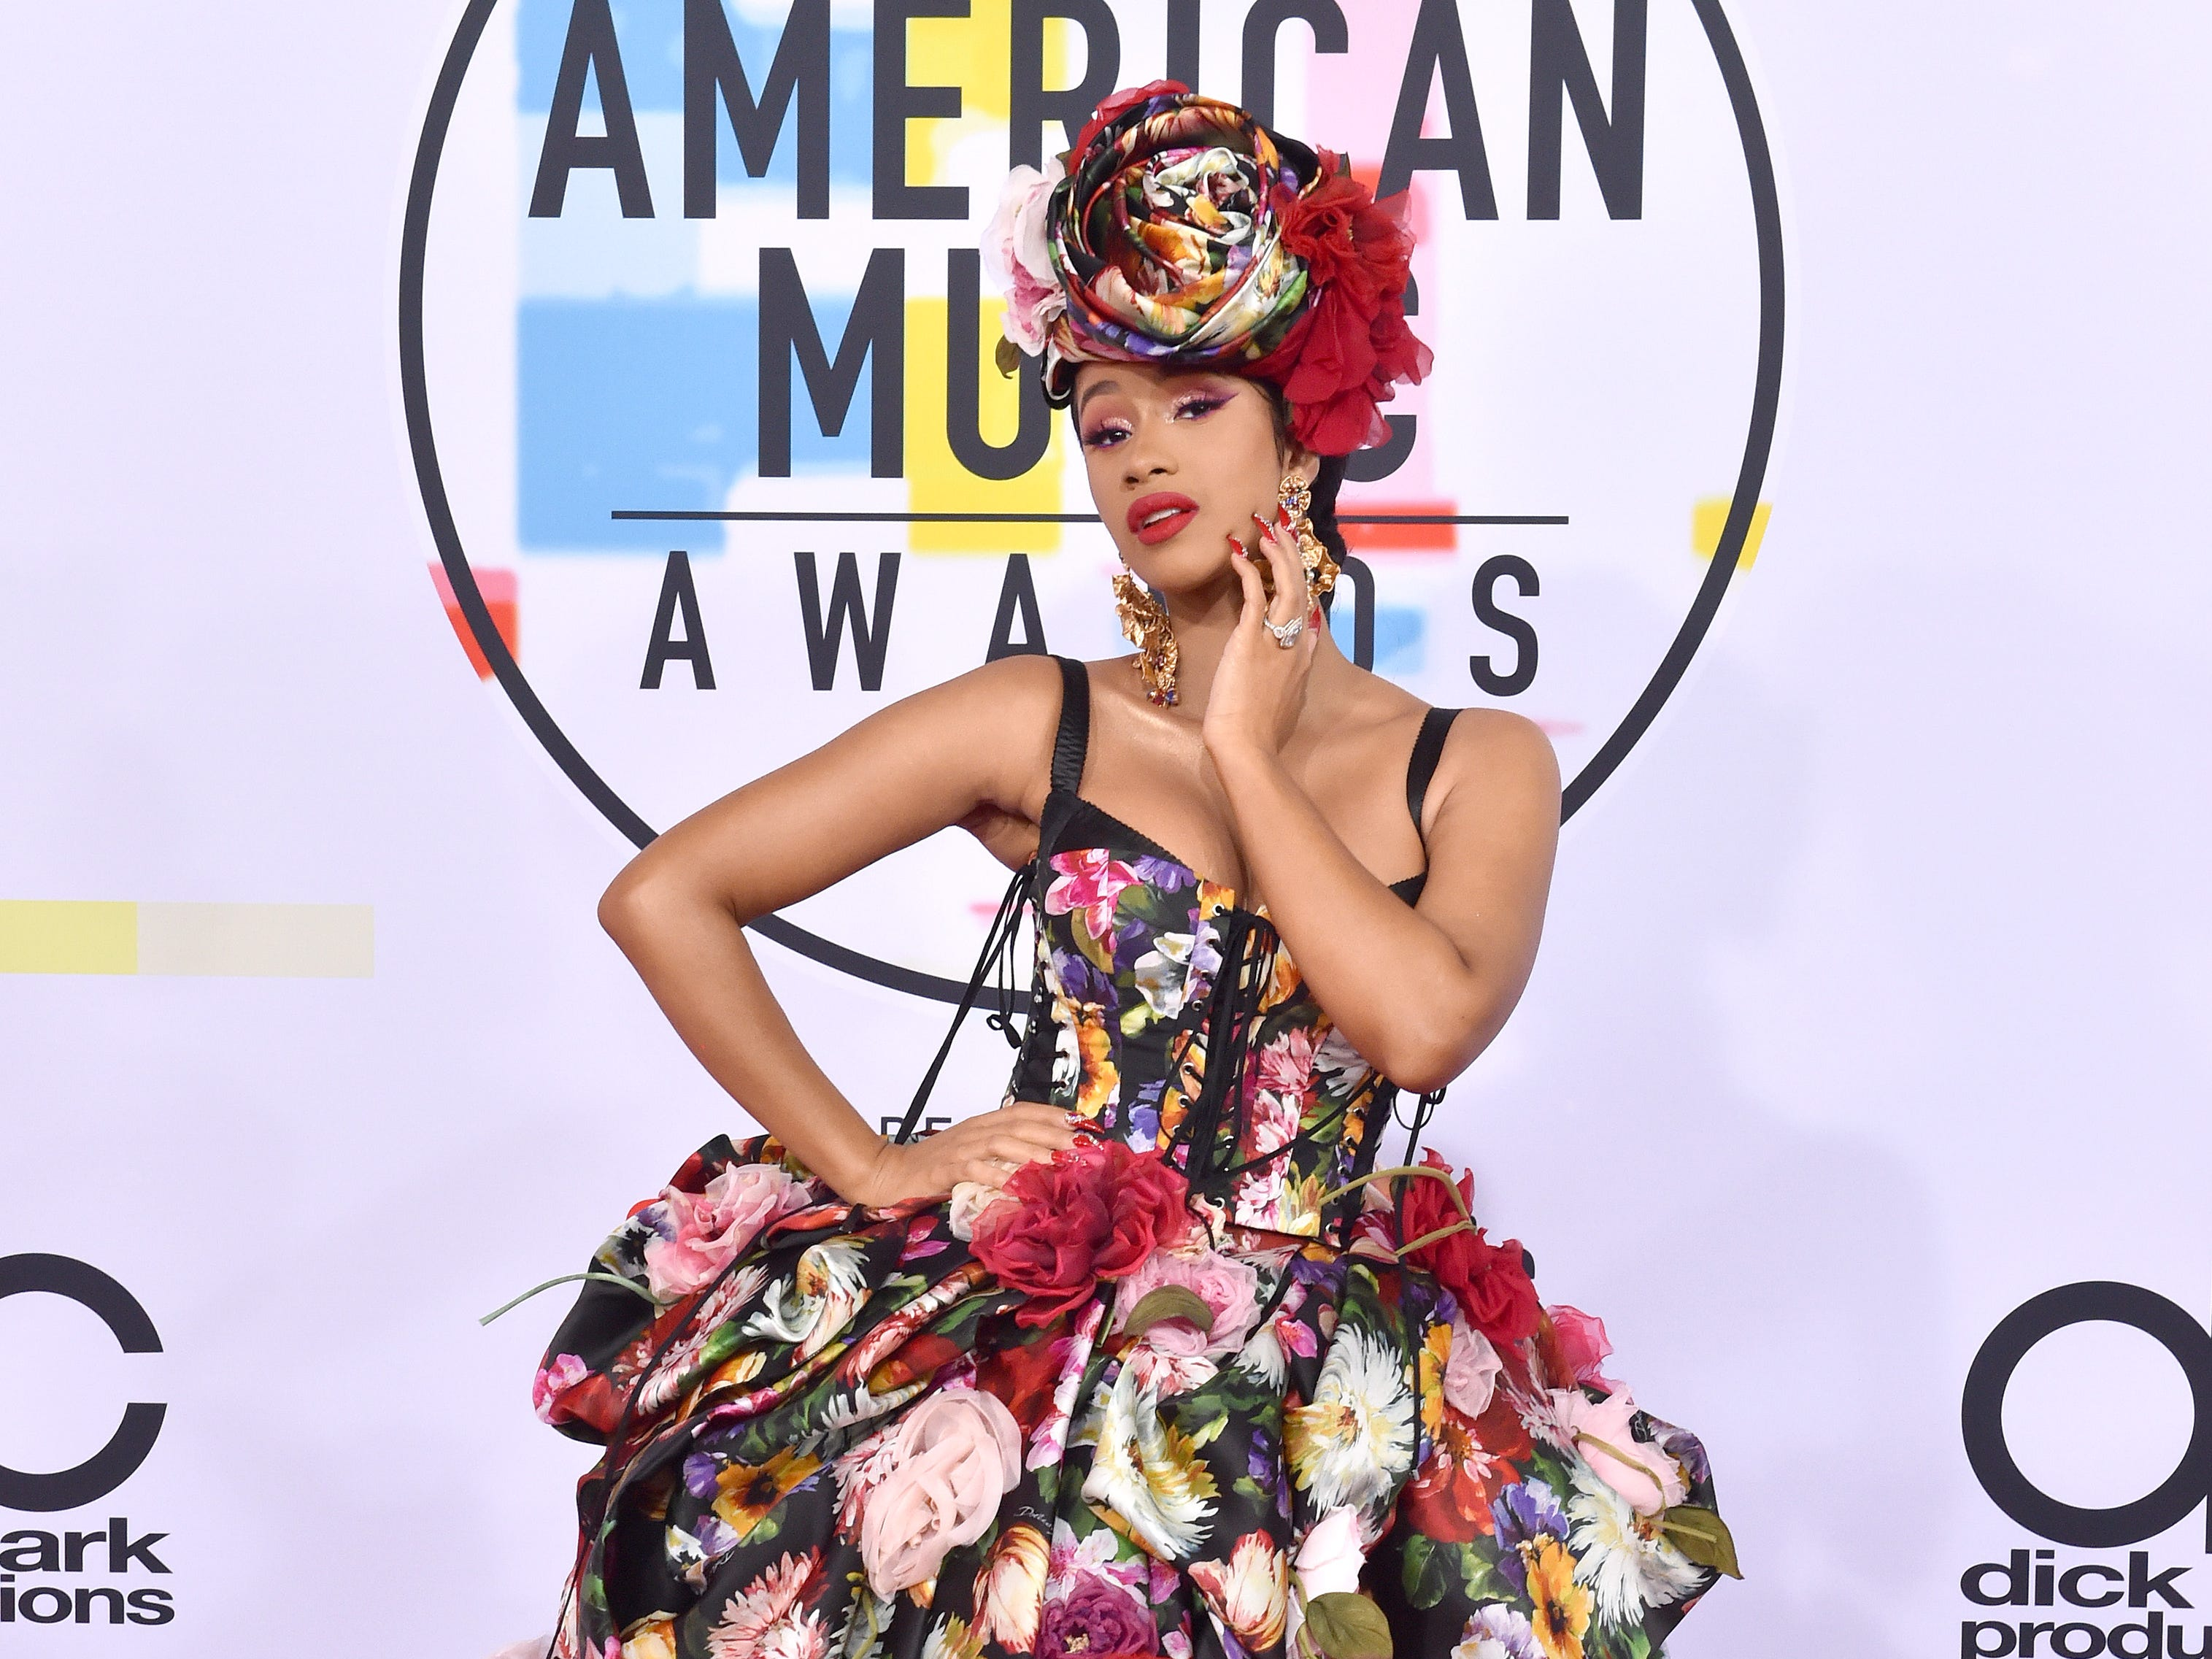 LOS ANGELES, CA - OCTOBER 09:  Cardi B attends the 2018 American Music Awards at Microsoft Theater on October 9, 2018 in Los Angeles, California.  (Photo by Axelle/Bauer-Griffin/FilmMagic) ORG XMIT: 775232724 ORIG FILE ID: 1048526626